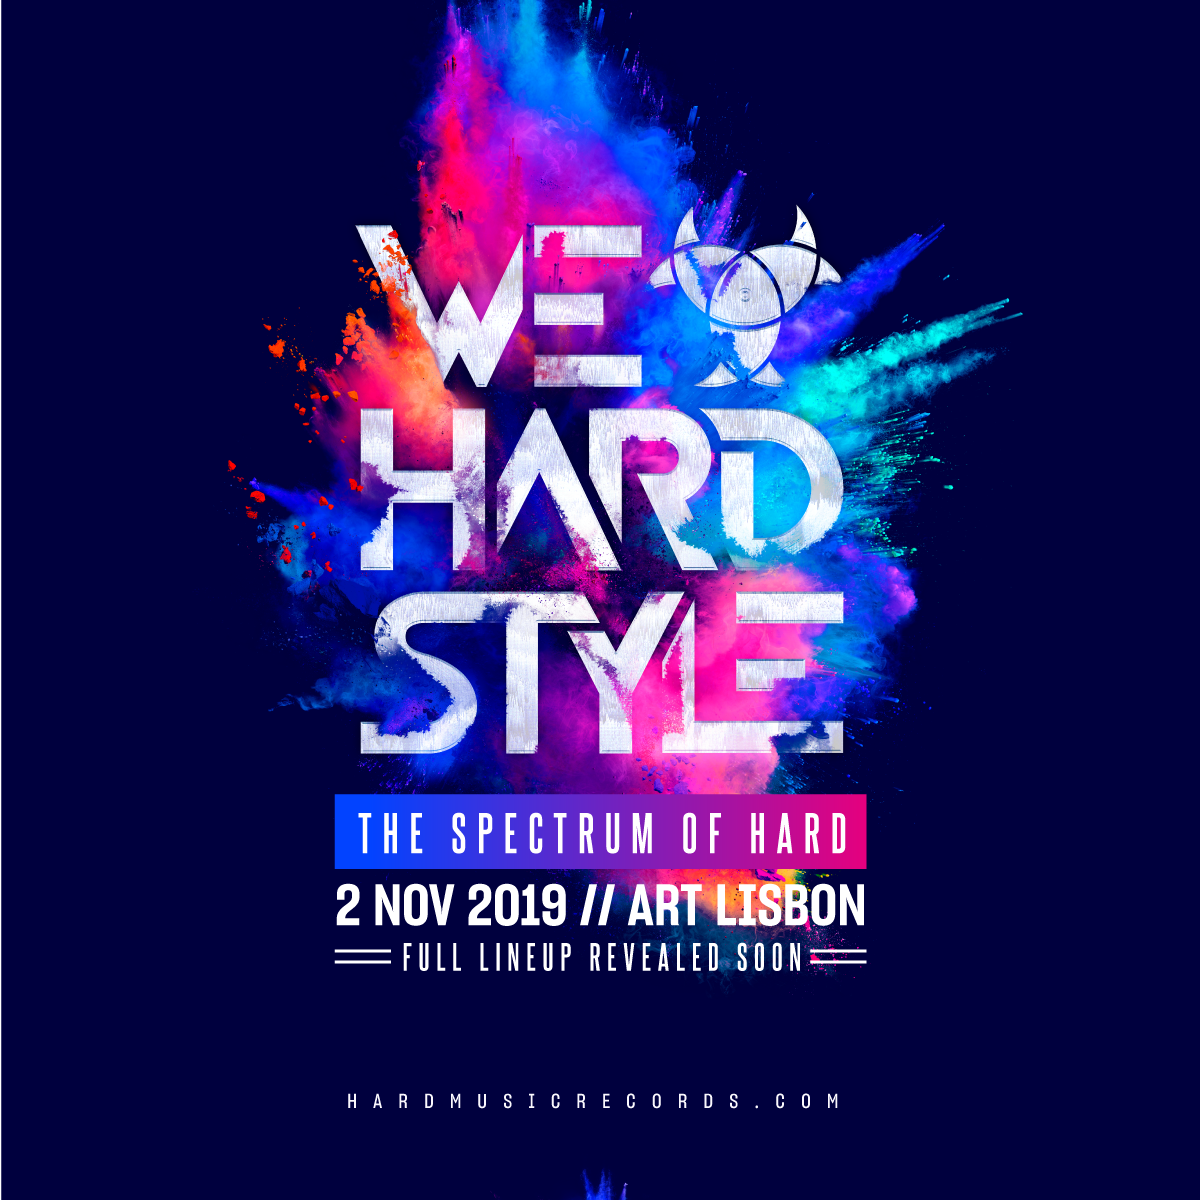 We Love Hardstyle - The Spectrum of Hard